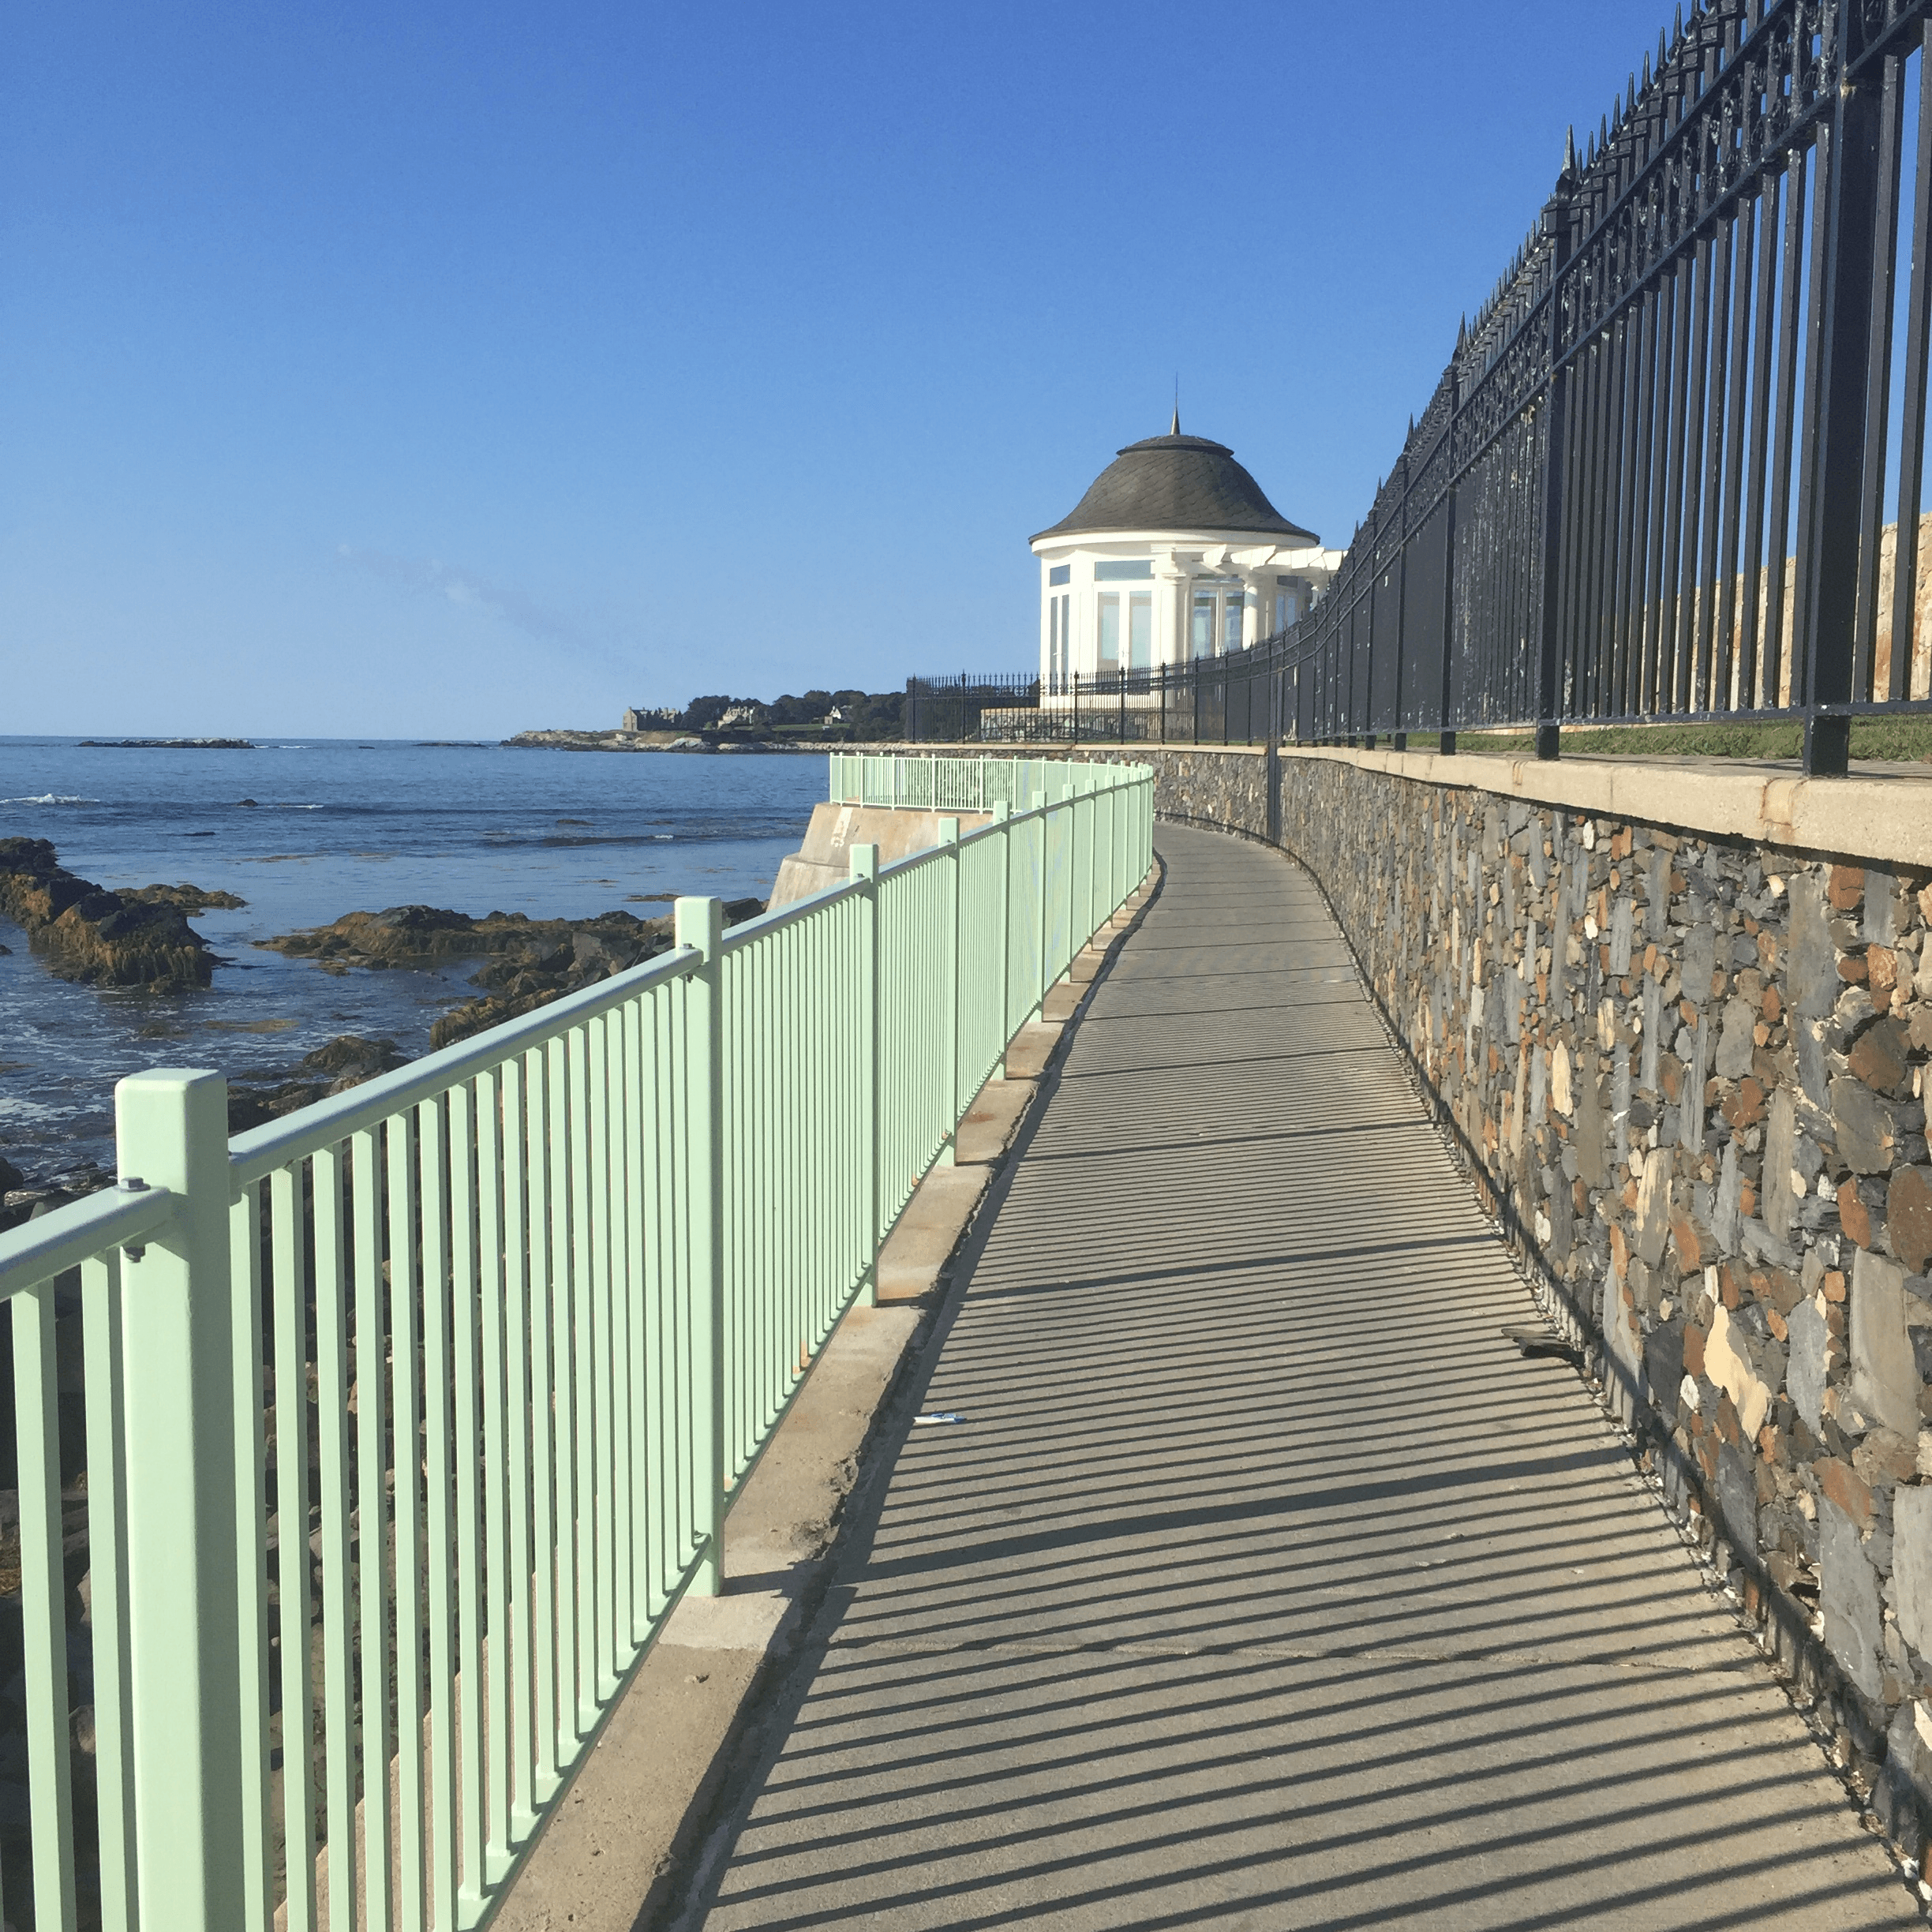 angelsea cliff walk newport RI